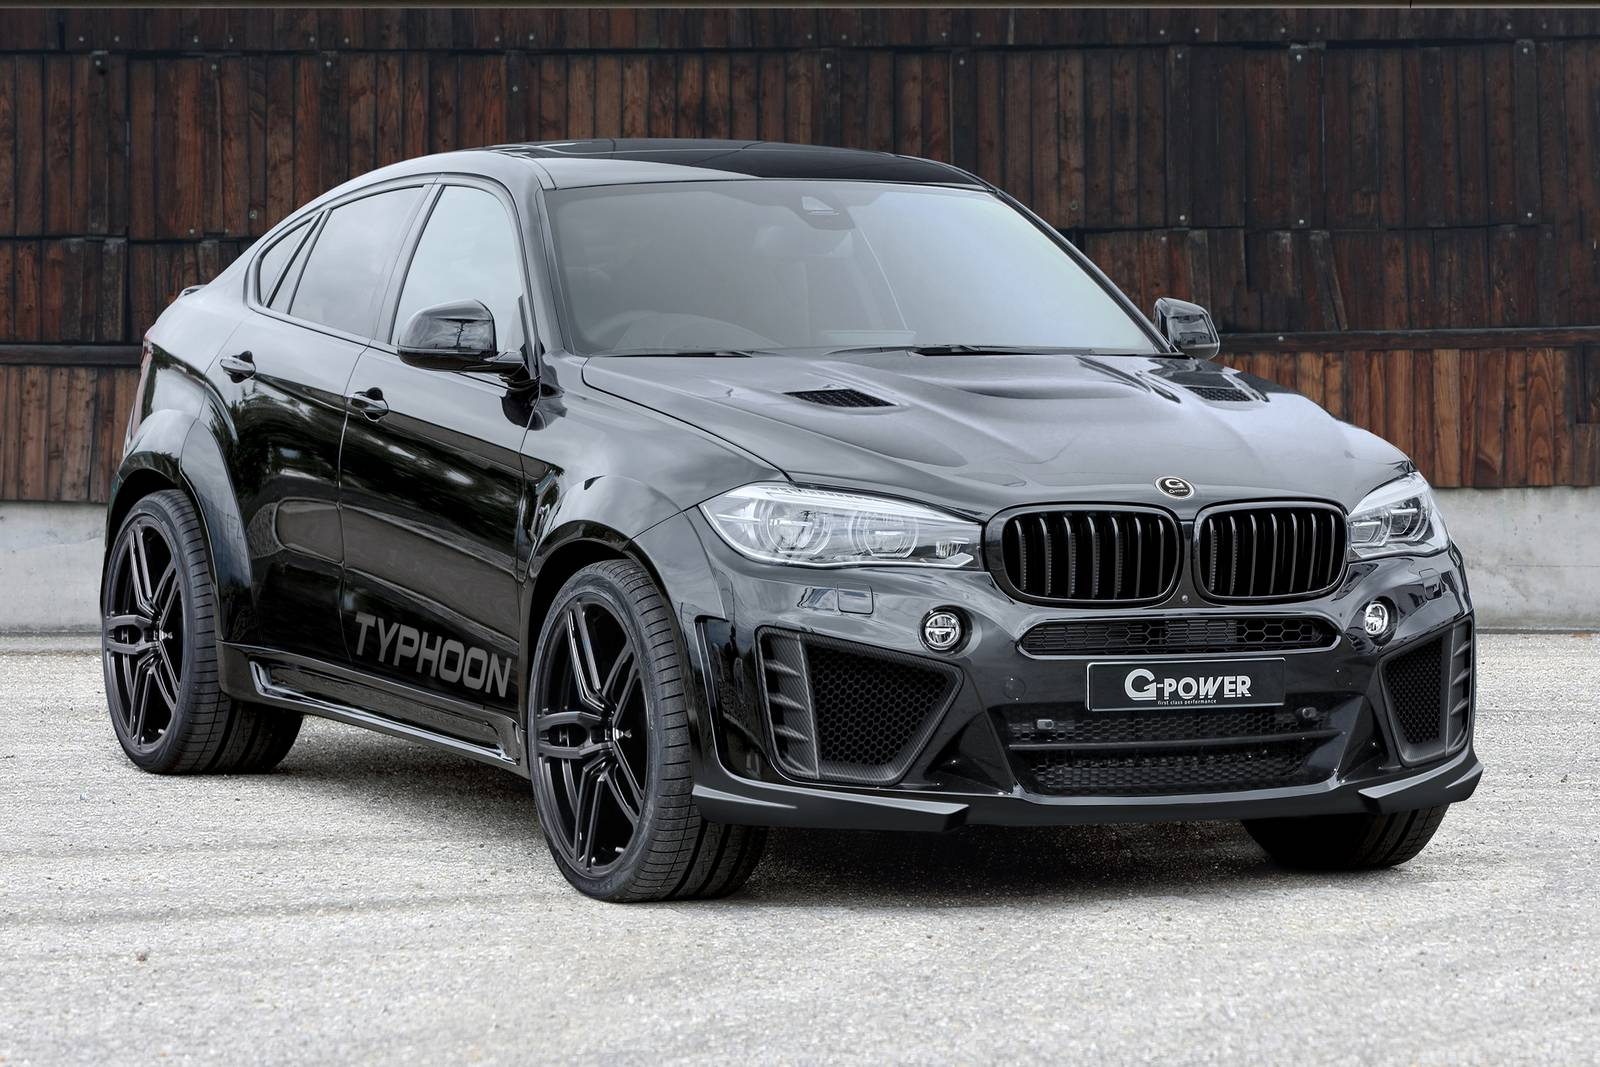 official 750hp g power bmw x6 m typhoon gtspirit